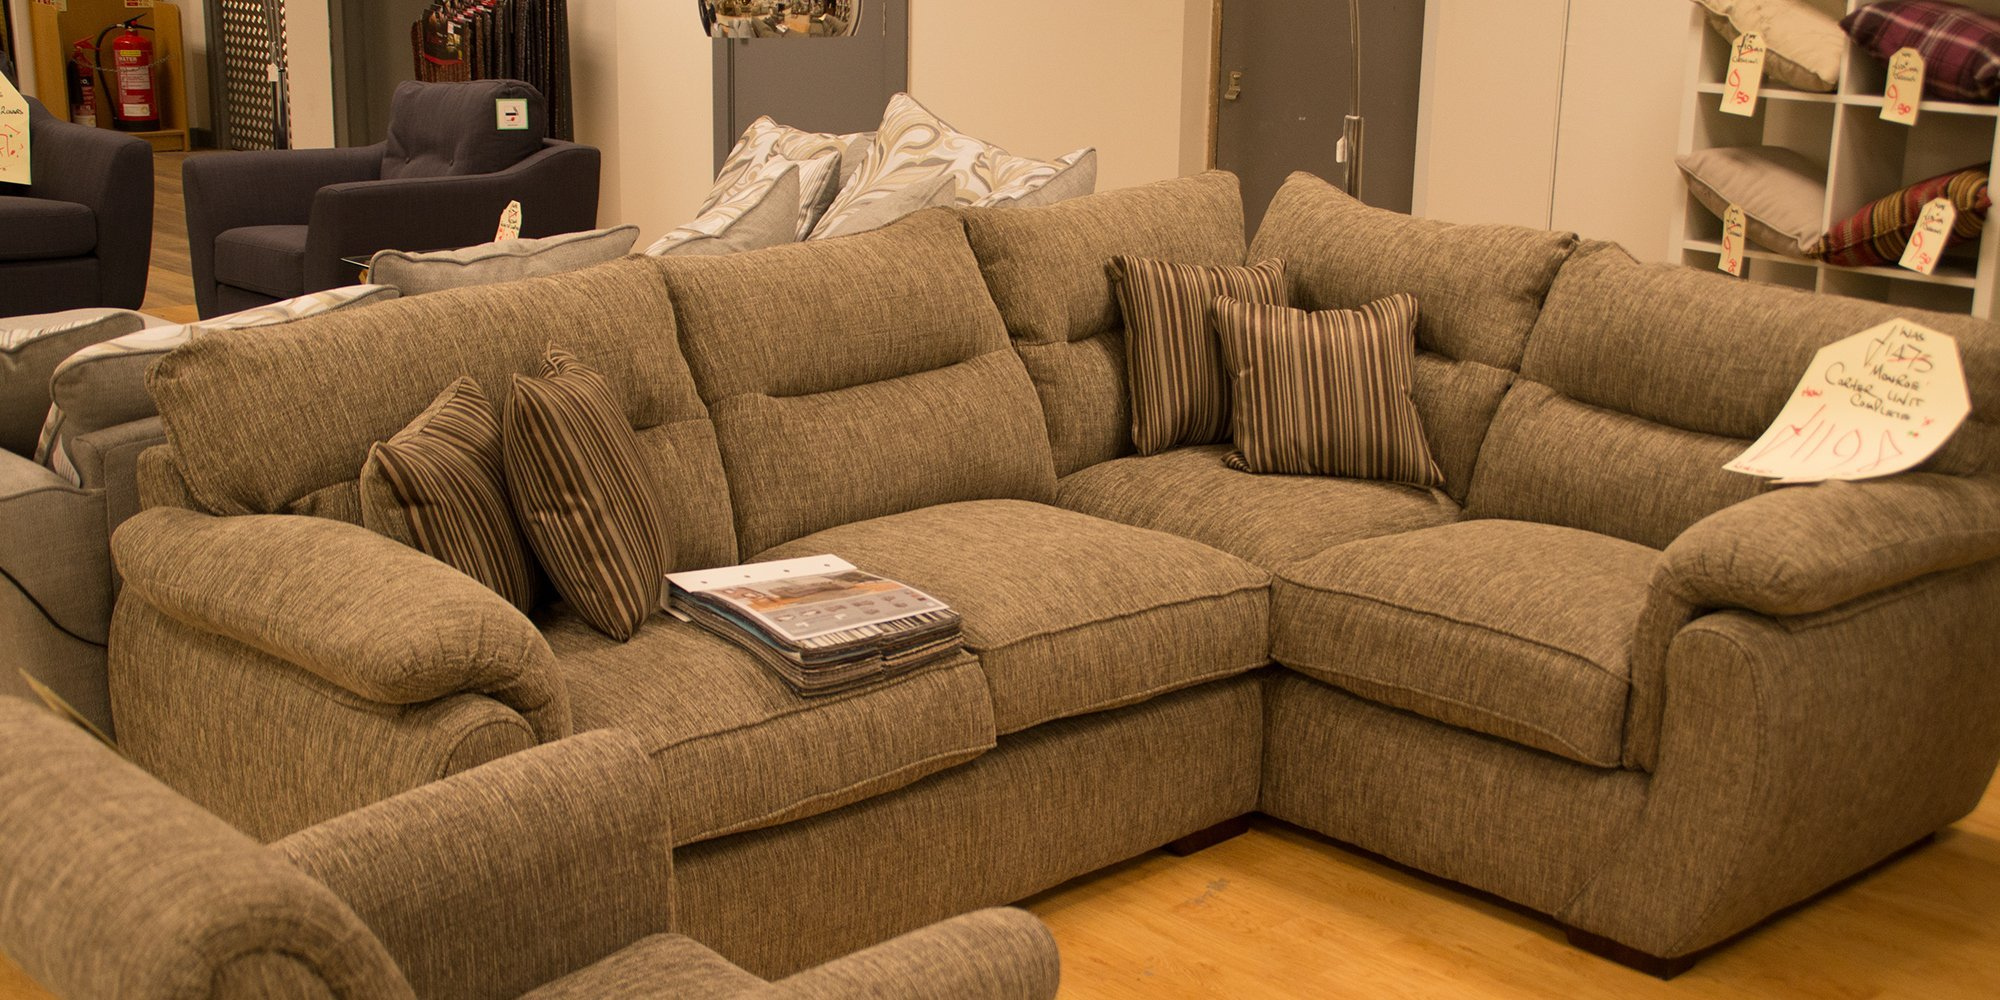 Wide range of high quality sofa sets at Clements